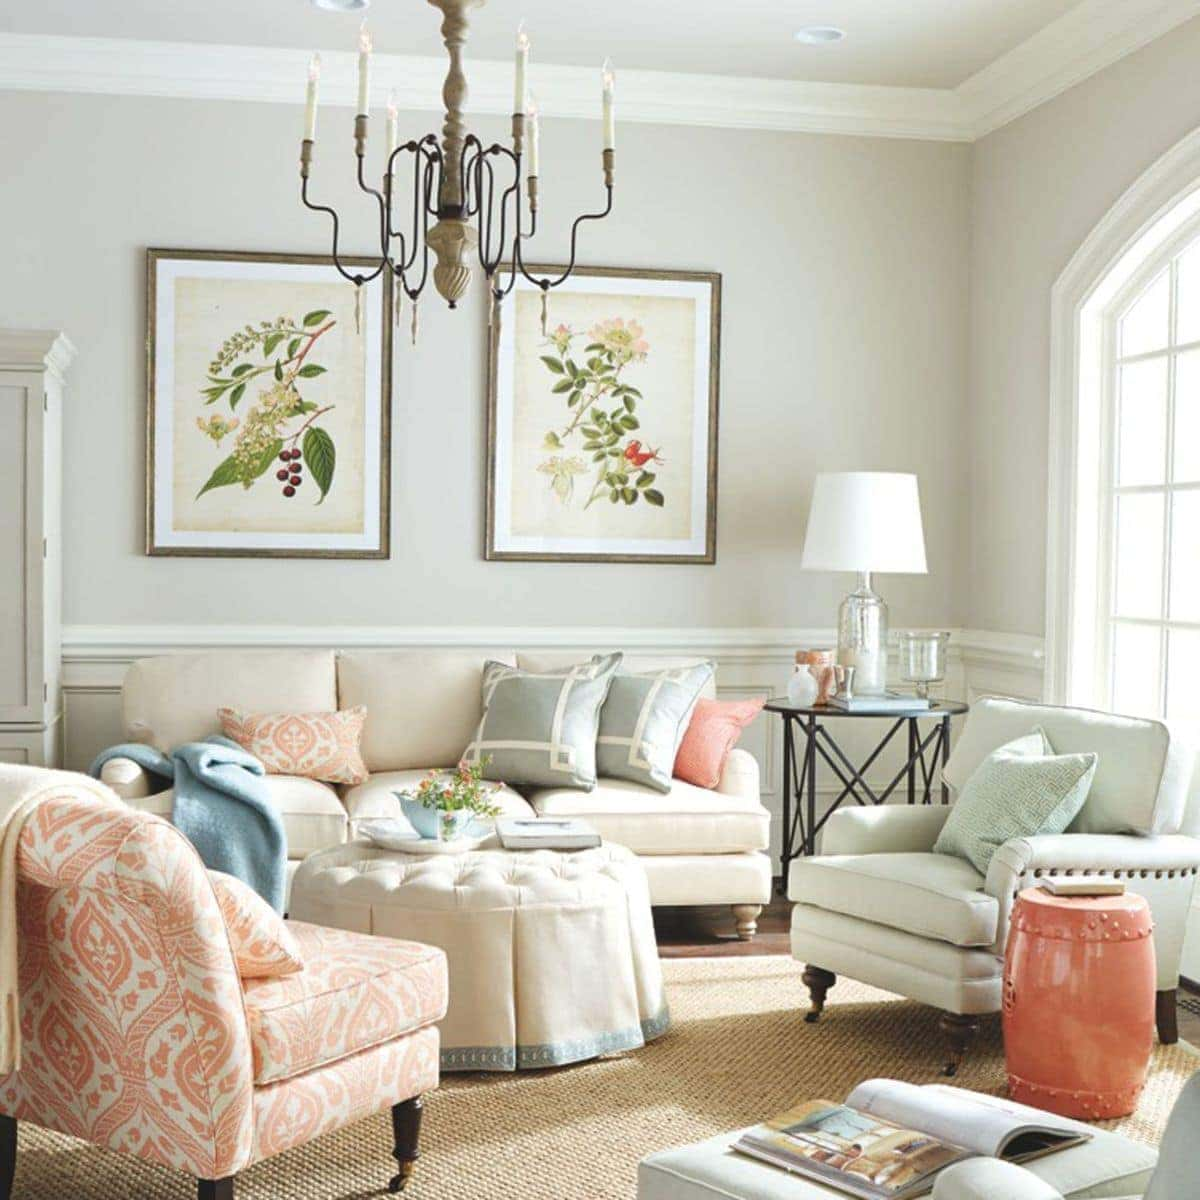 My dream home julie blanner entertaining home design for Images of living room designs